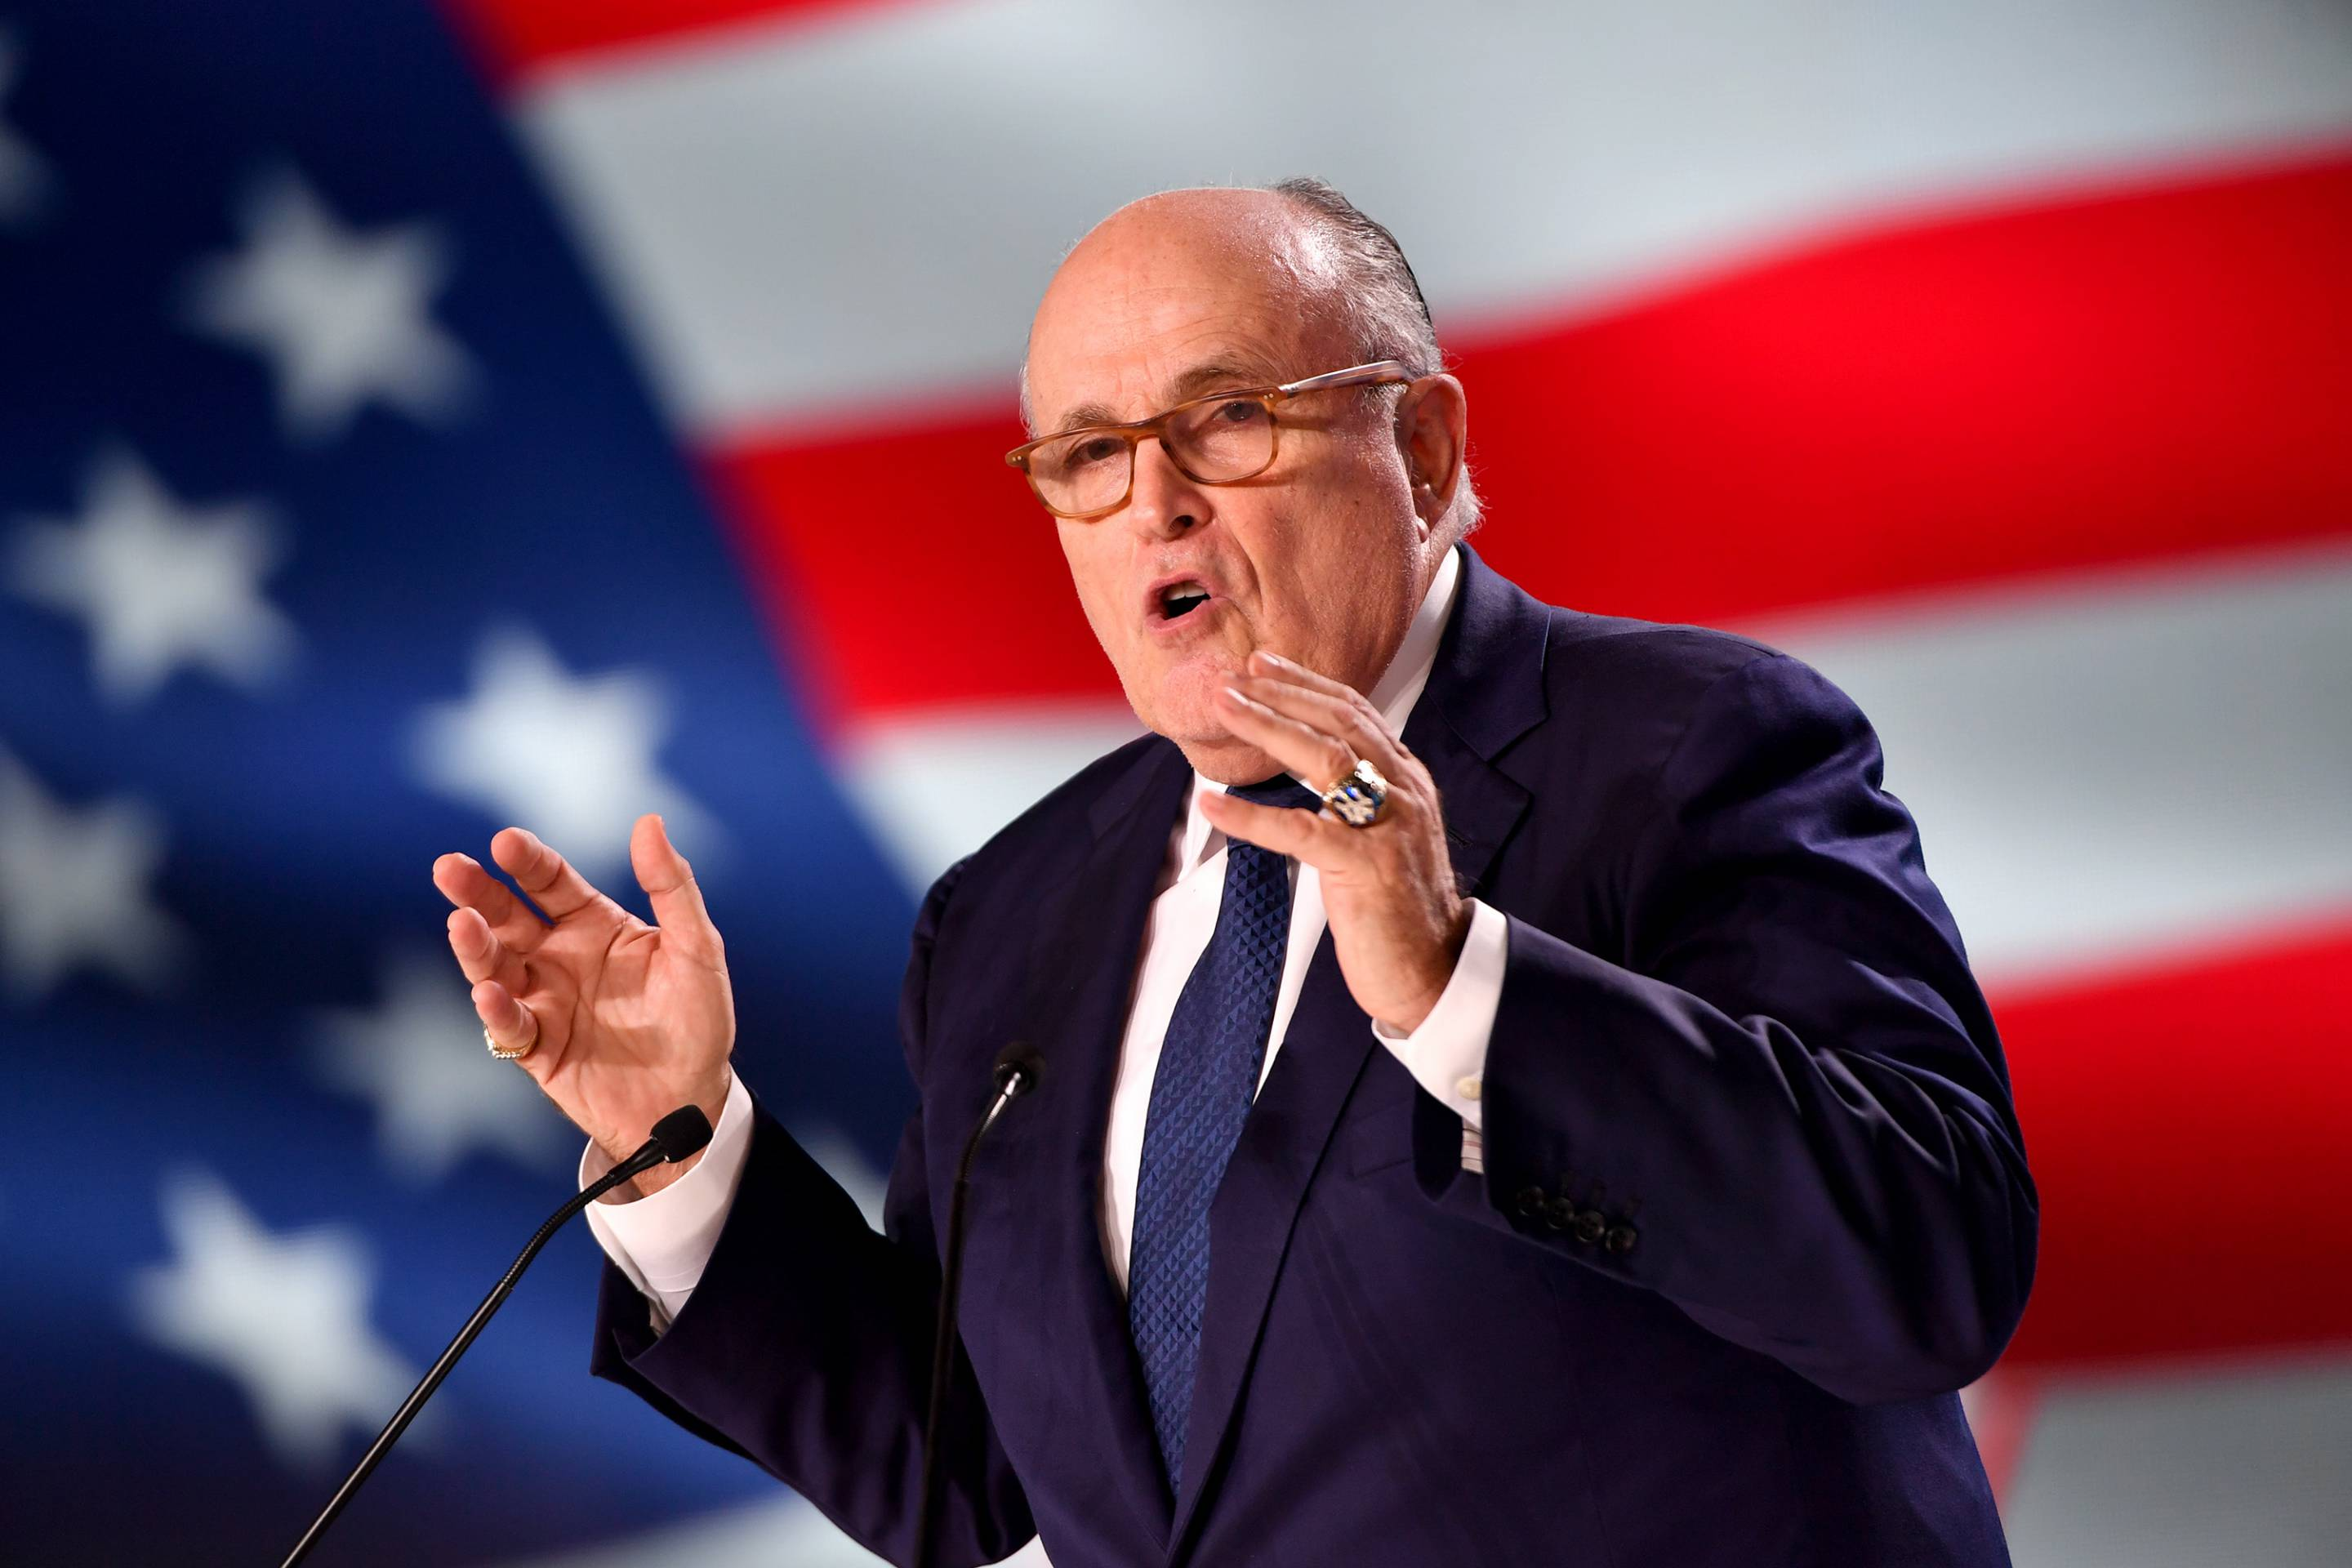 Former New York City mayor Rudy Giuliani speaks at the Conference in Support of Freedom and Democracy In Iran on June 30, 2018 in Paris.